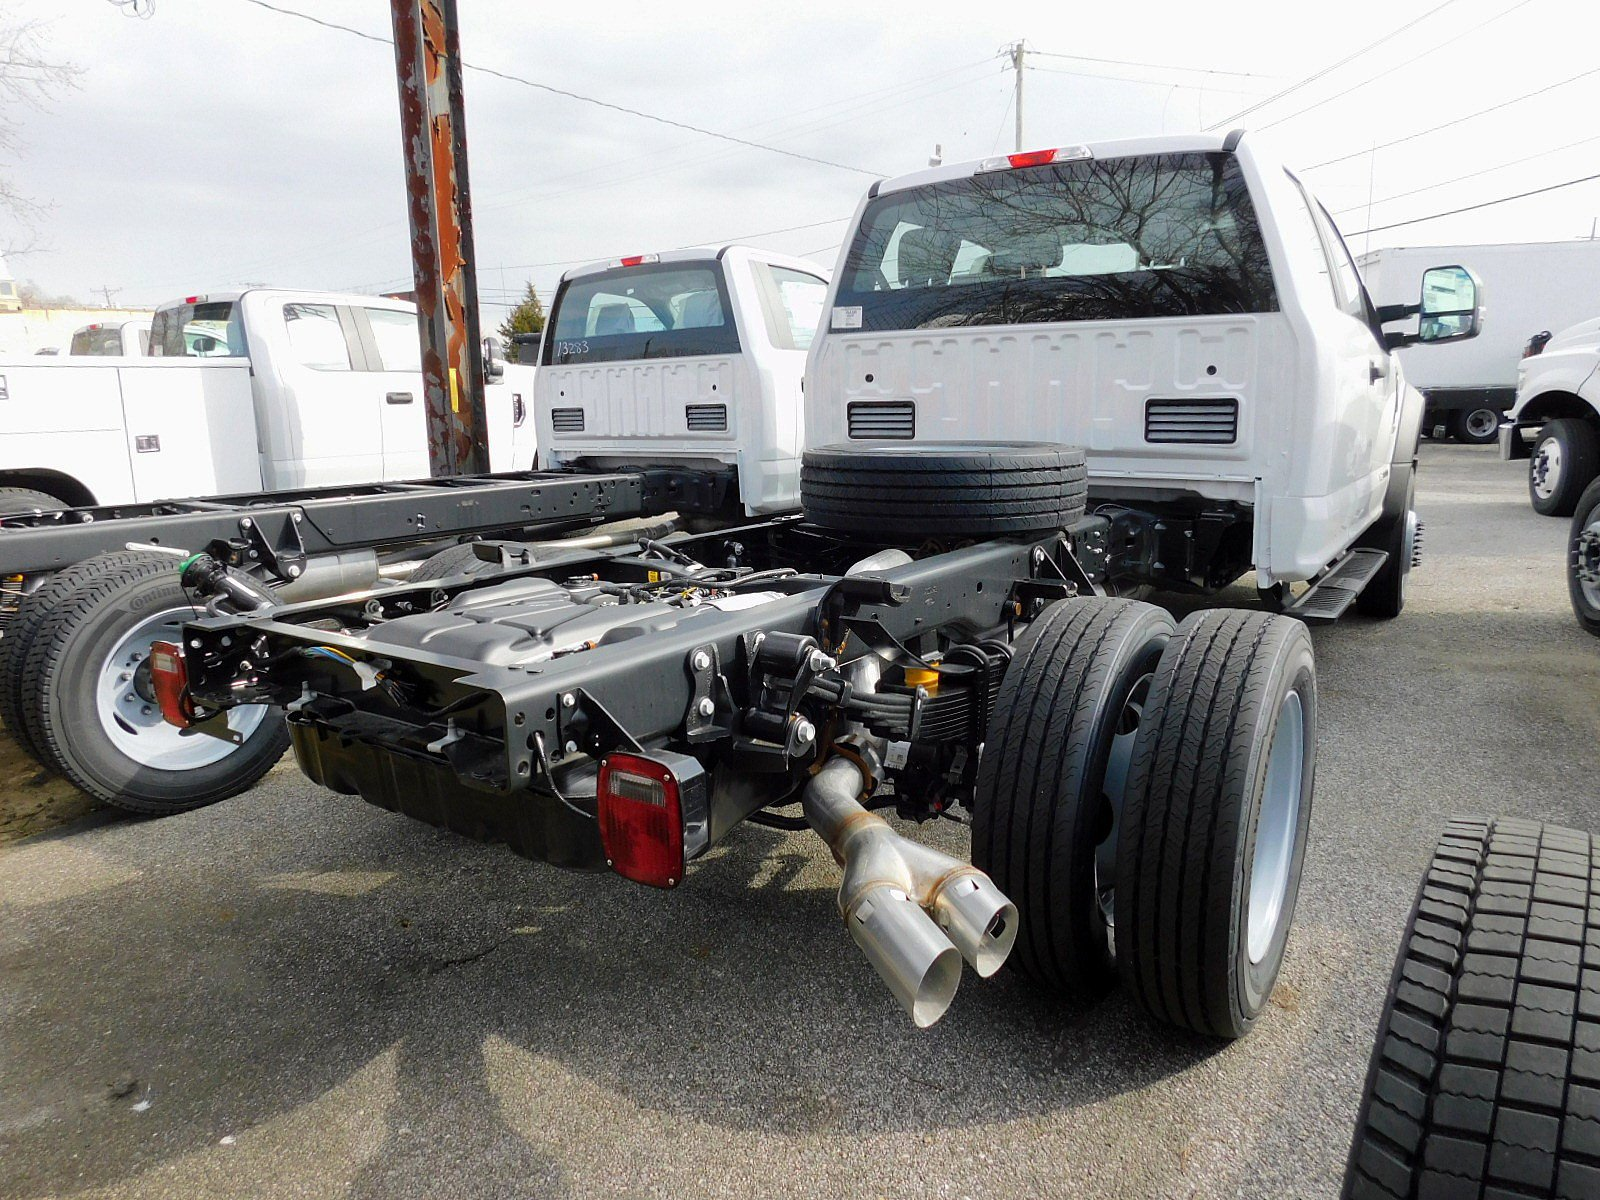 NEW 2019 FORD SUPER DUTY F-550 DRW TRUCK, CAB CHASSIS TRUCK #7010-4